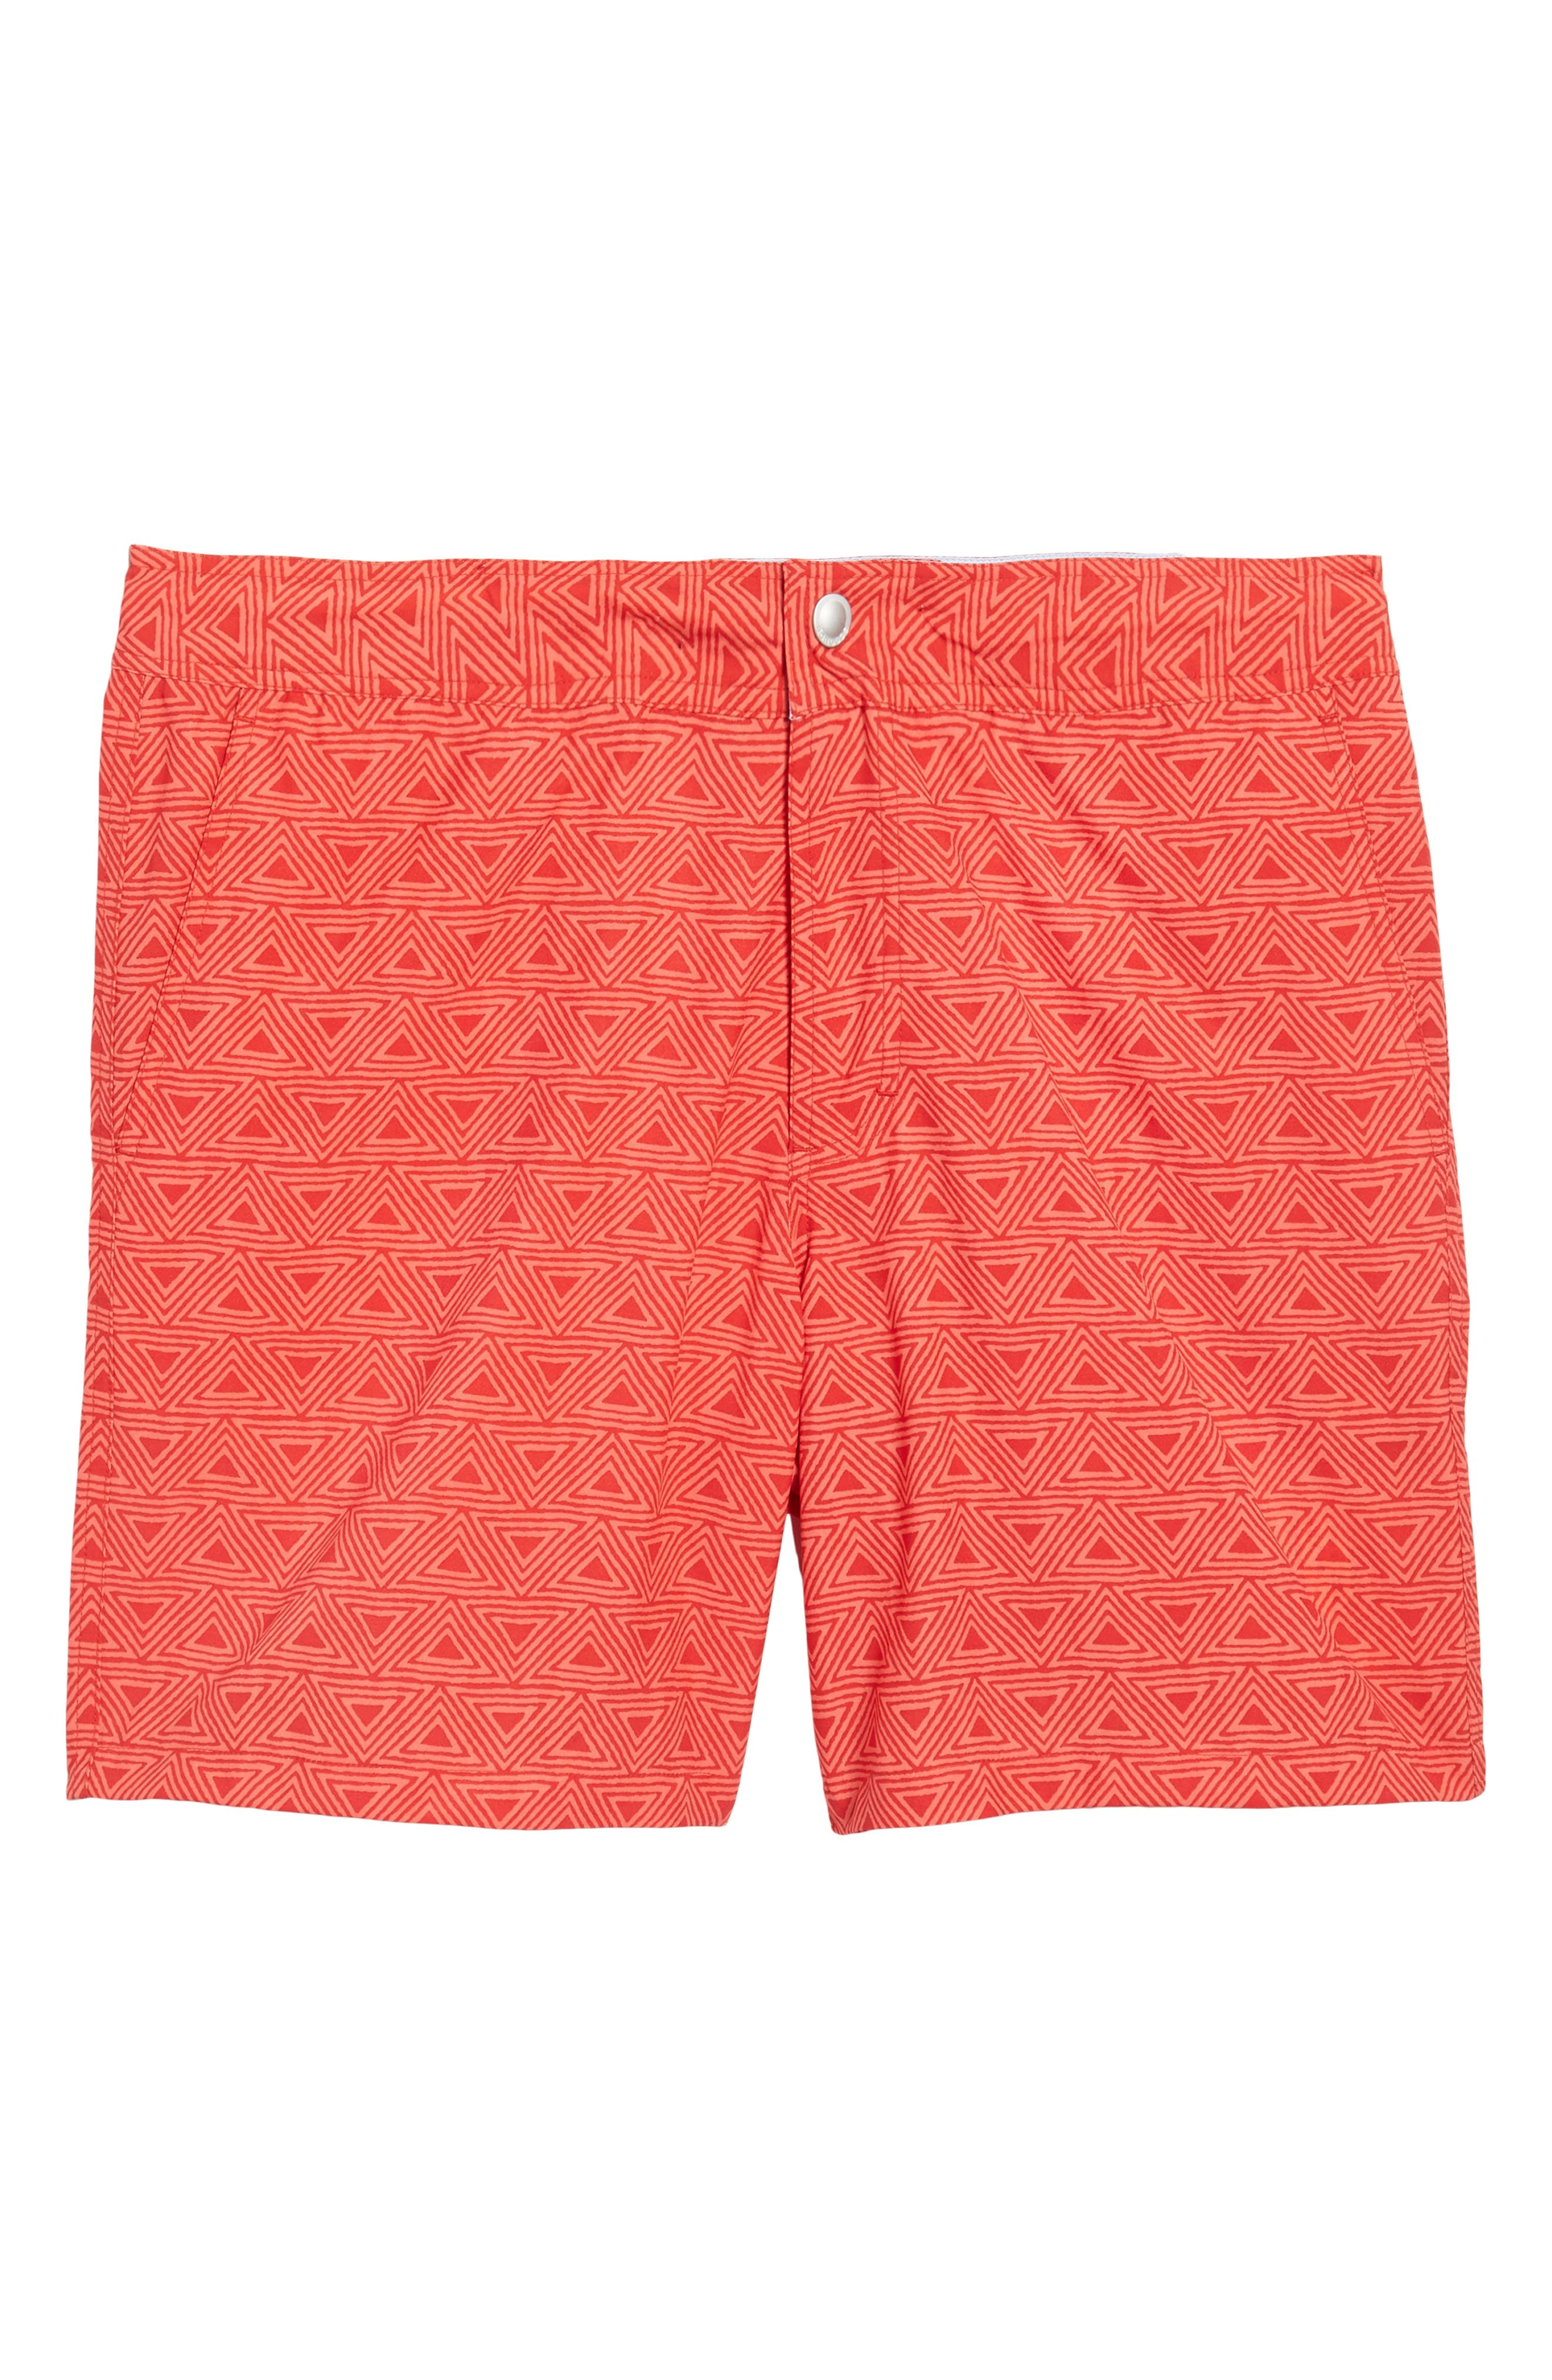 Geo Print 7-Inch Swim Trunks,                             Alternate thumbnail 6, color,                             650